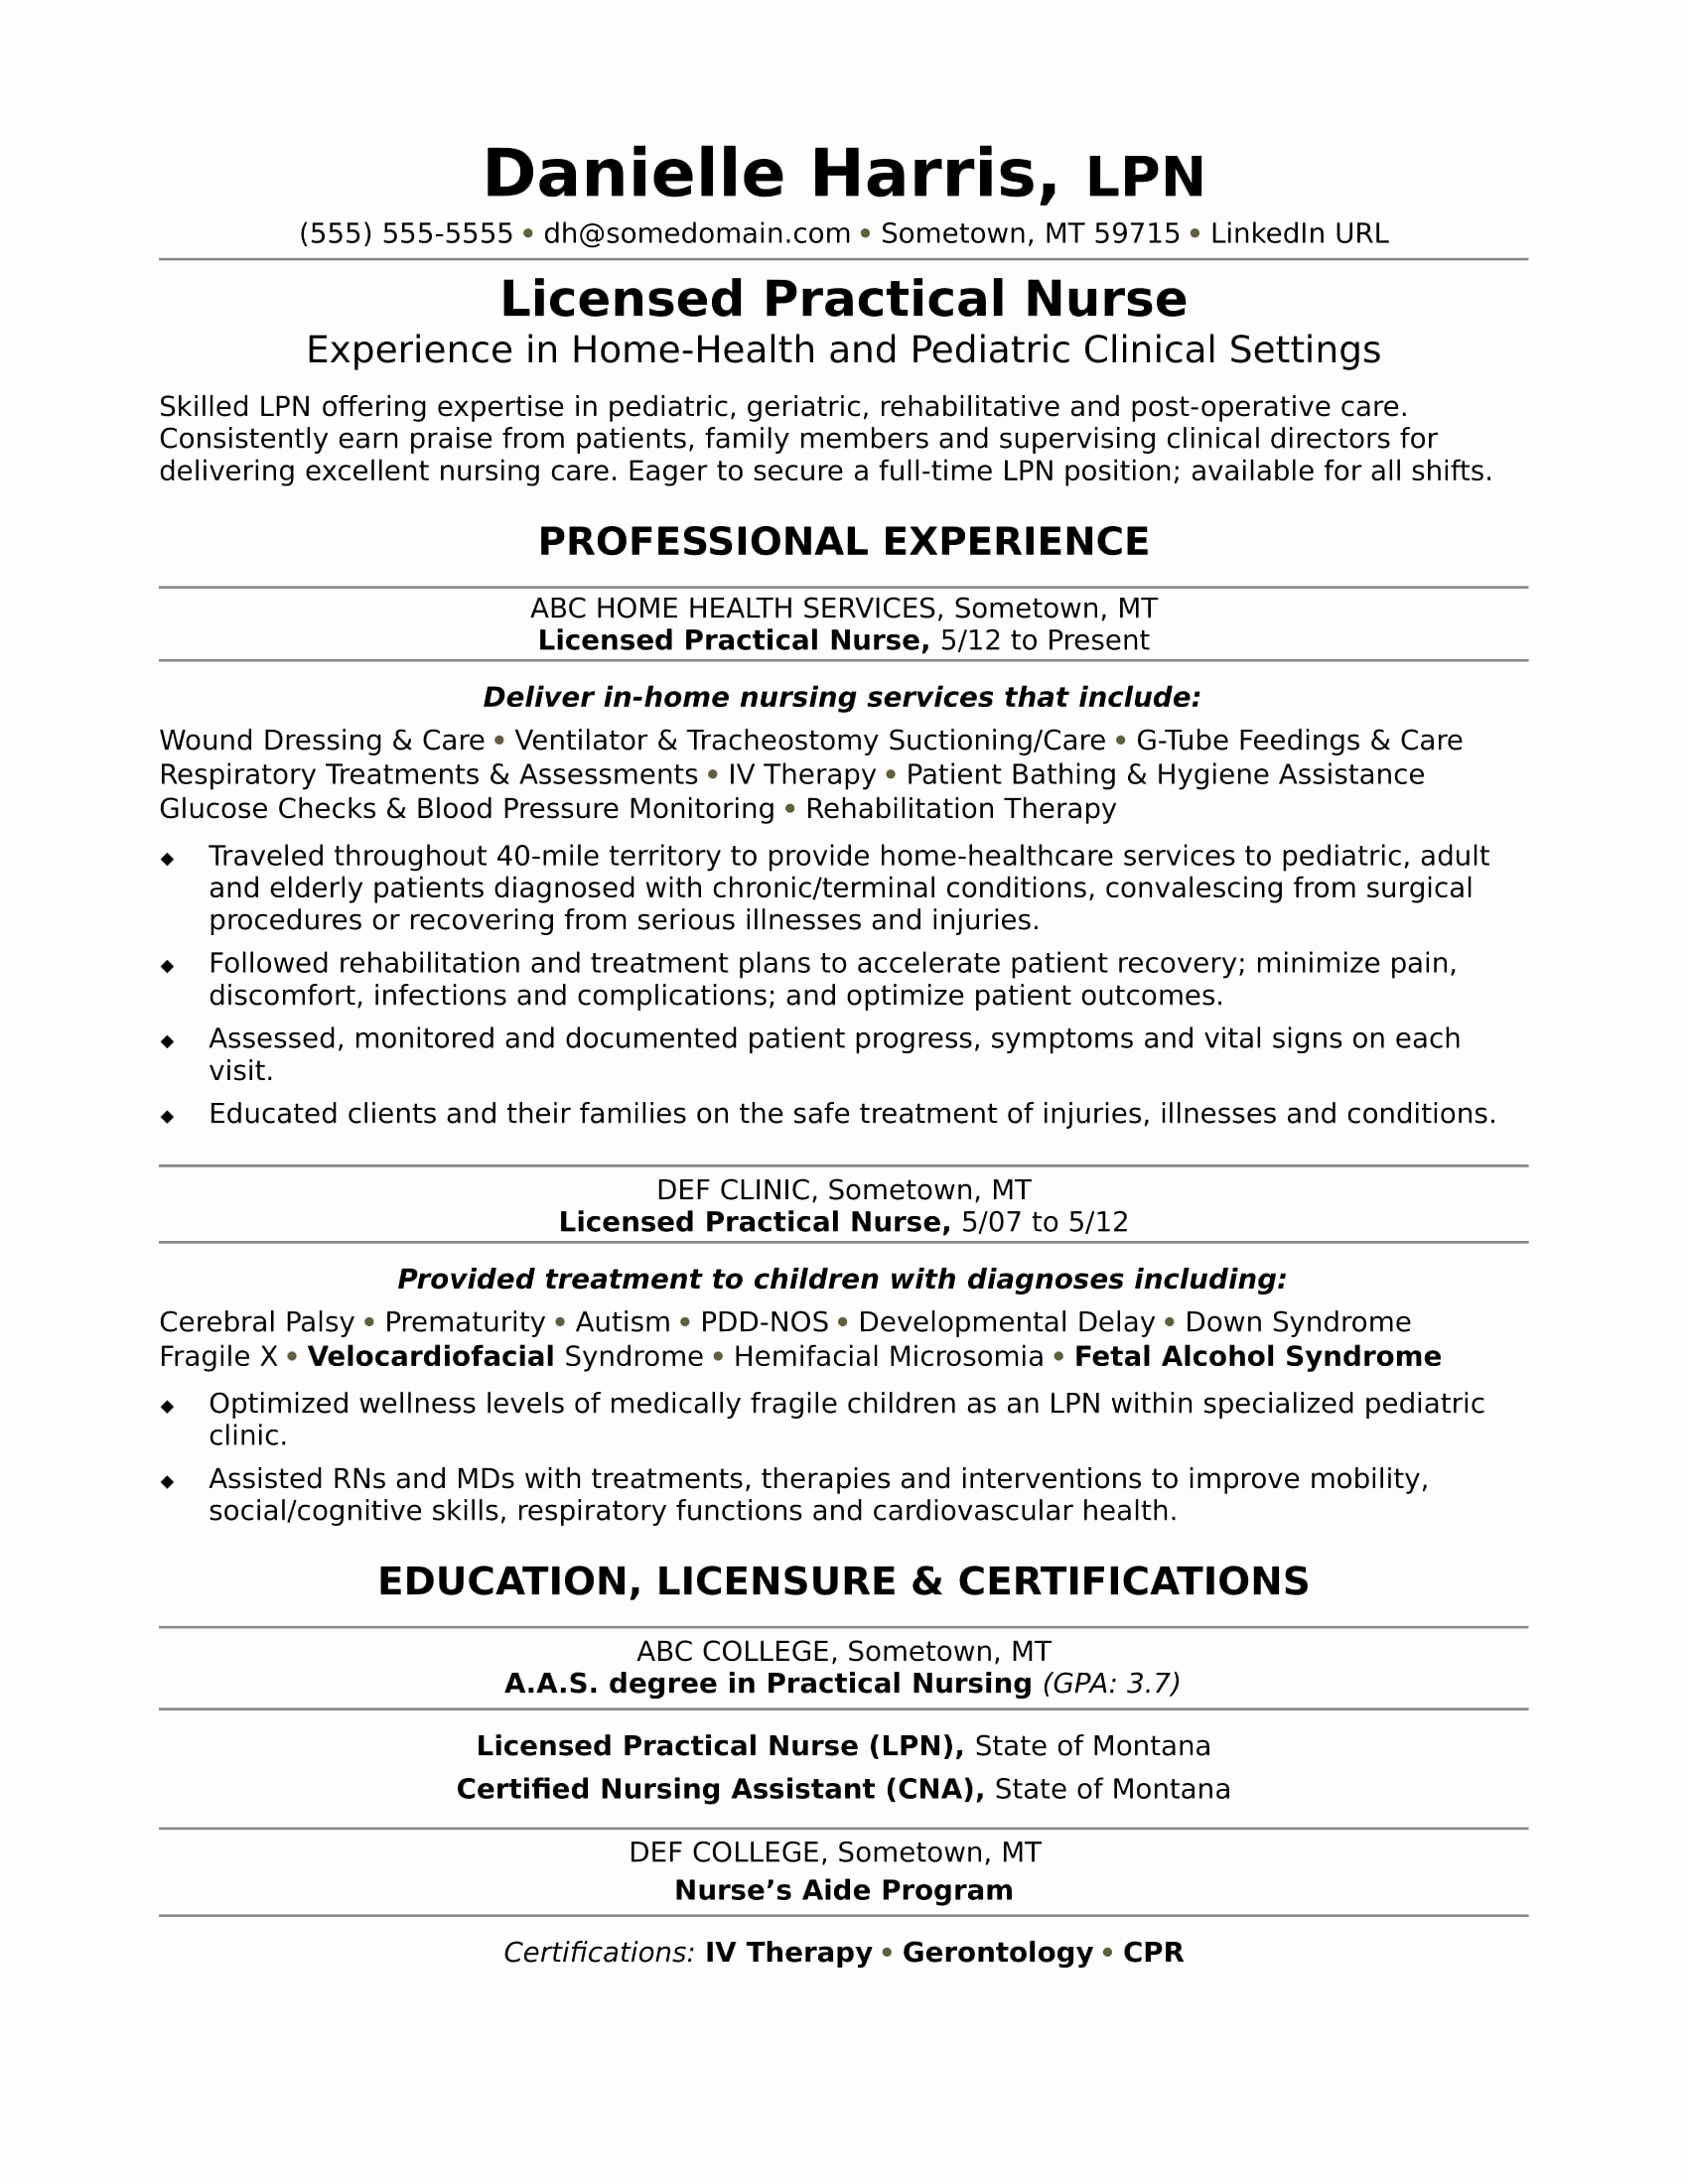 Education Section Of Resume - Experience Section Resume Unique Resume with Experience